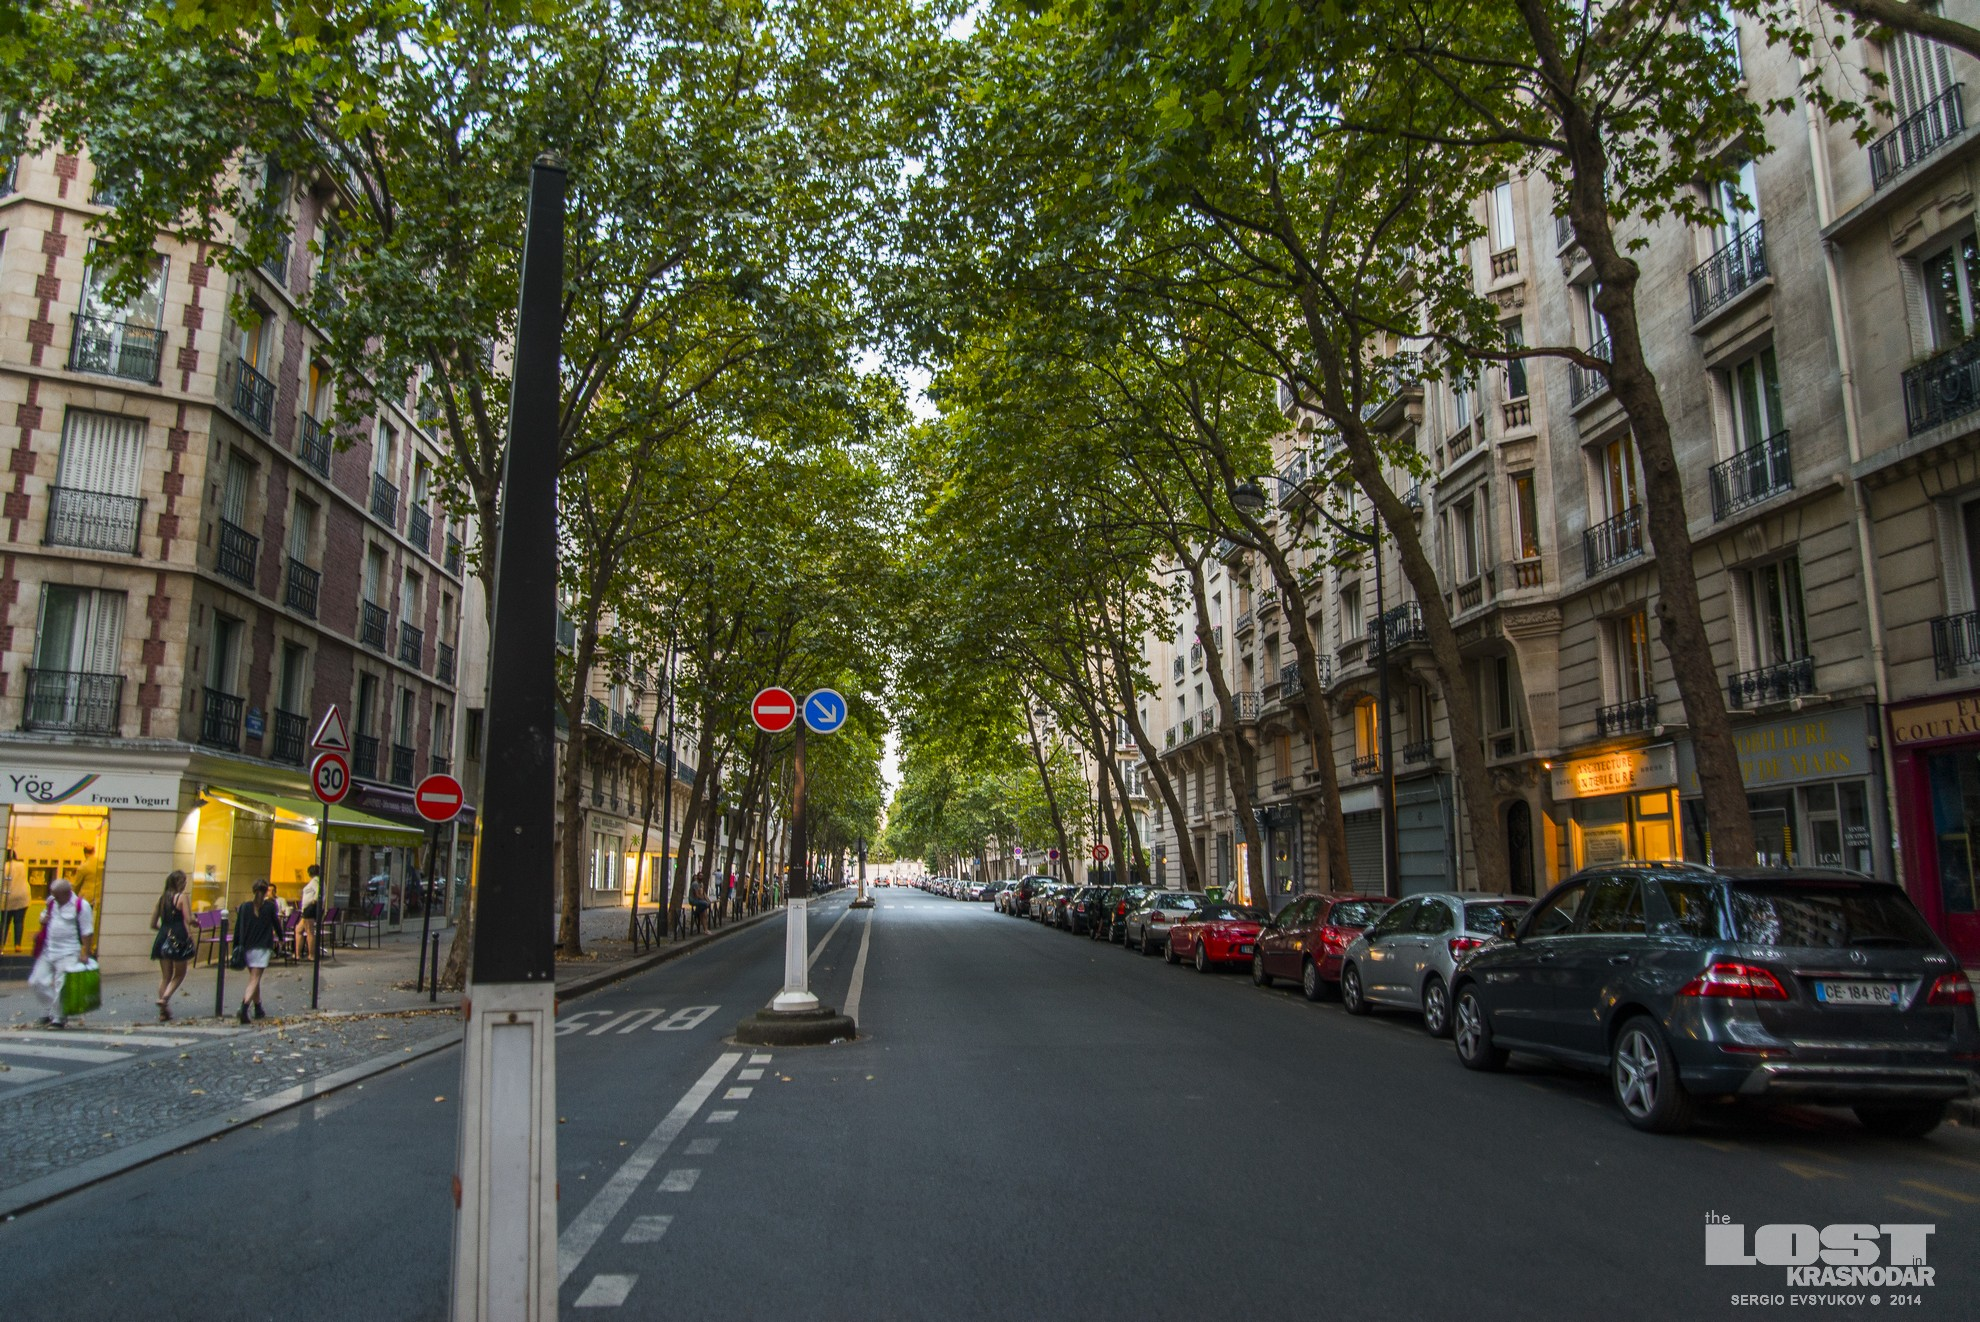 Paris Street with trees